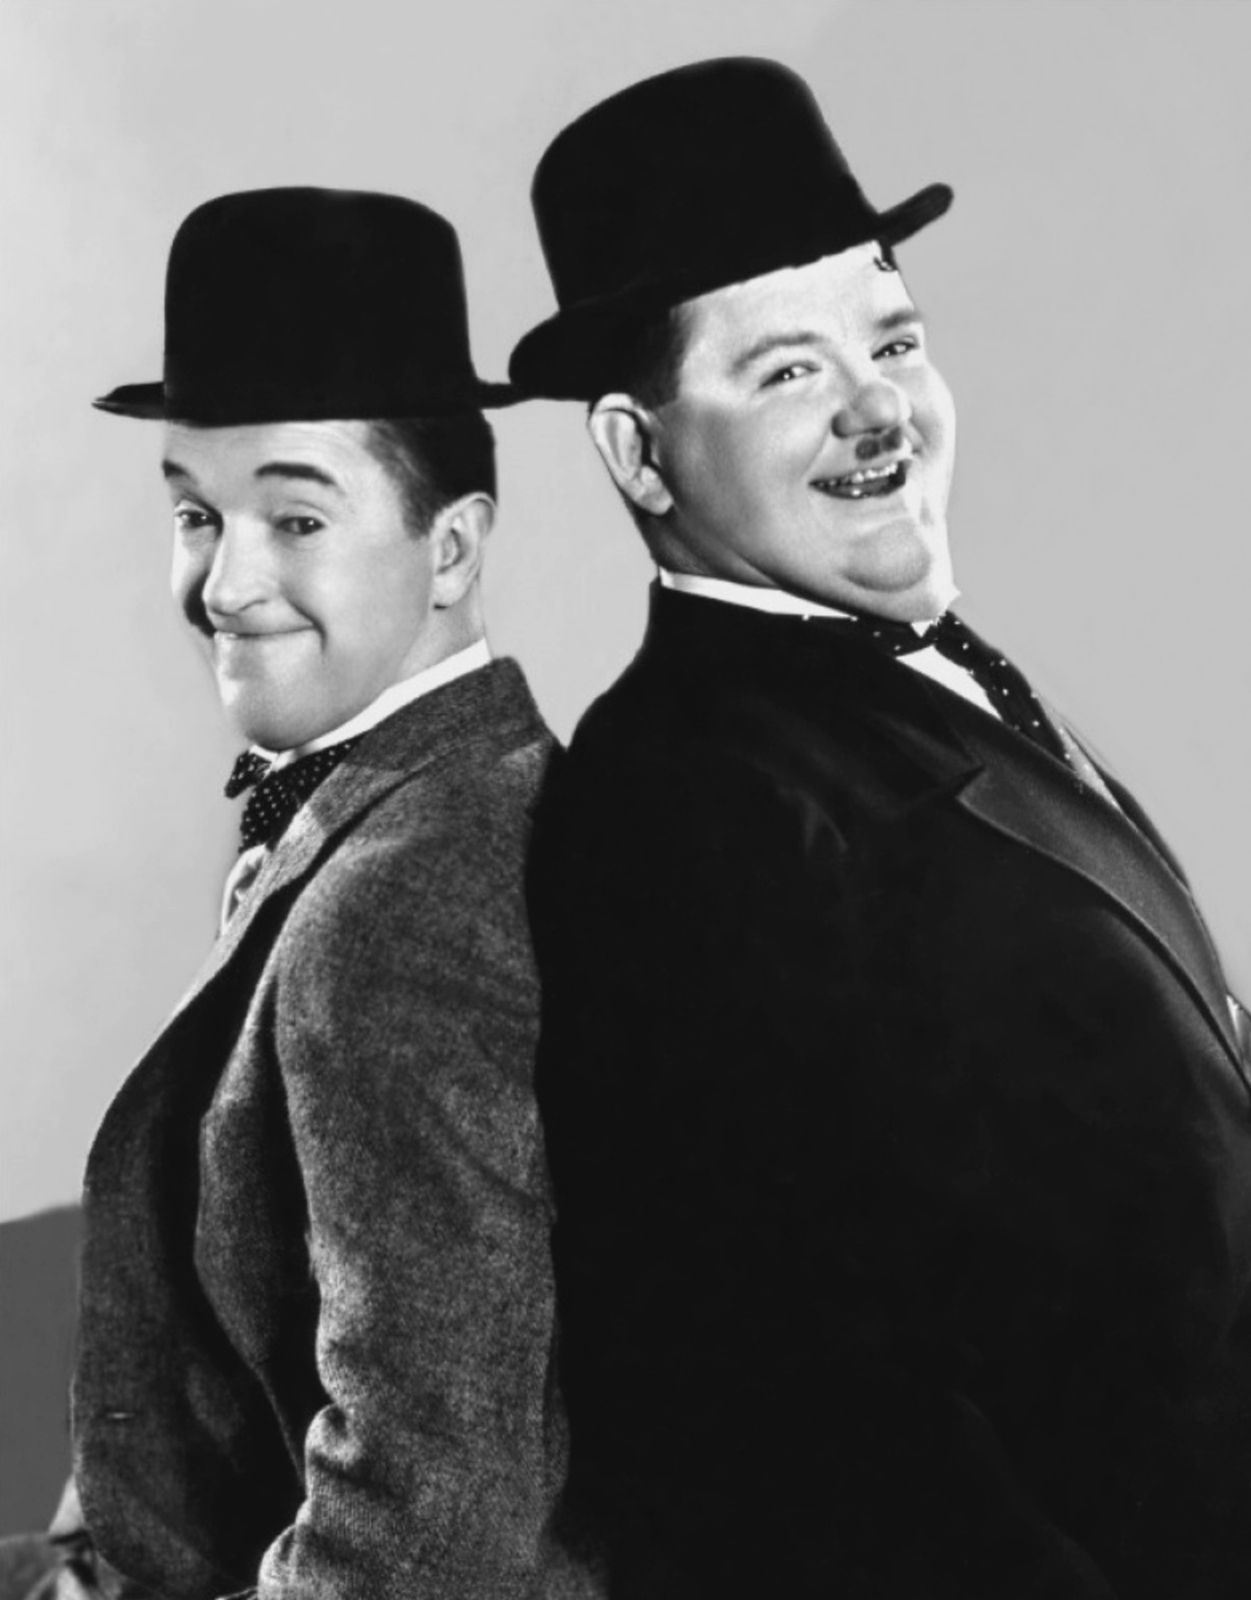 Pin by Kaz Neavill on celebs | Pinterest | Stan laurel, Comedy duos ...